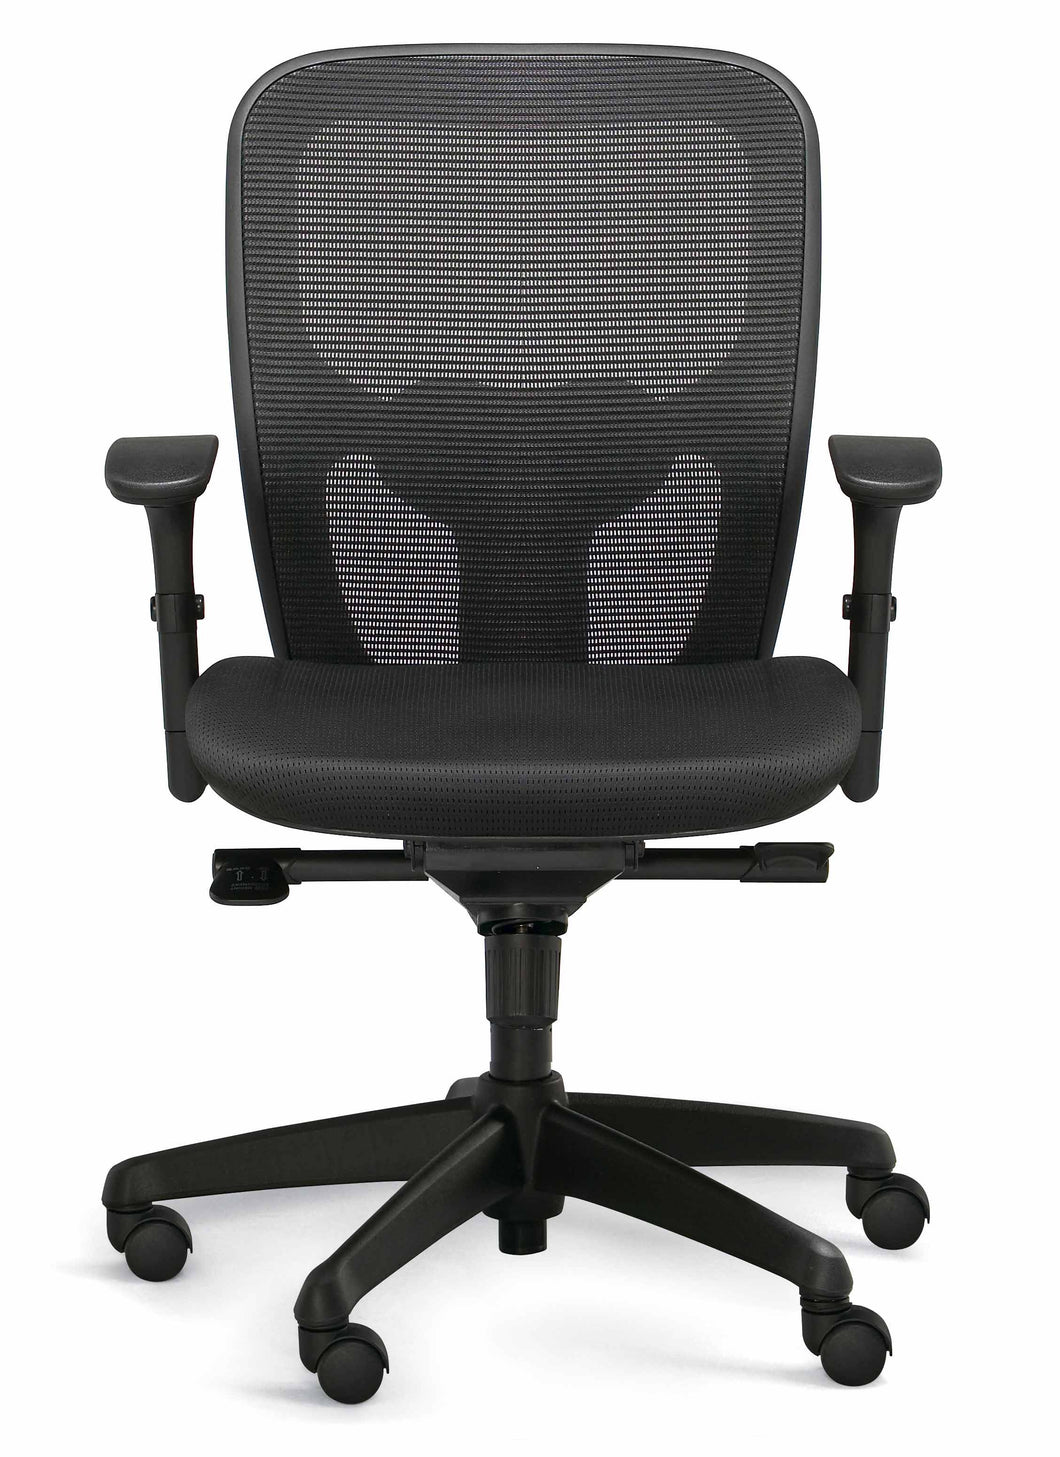 ACTIV ergonomic office chair with mesh backrest and adjustable armrests